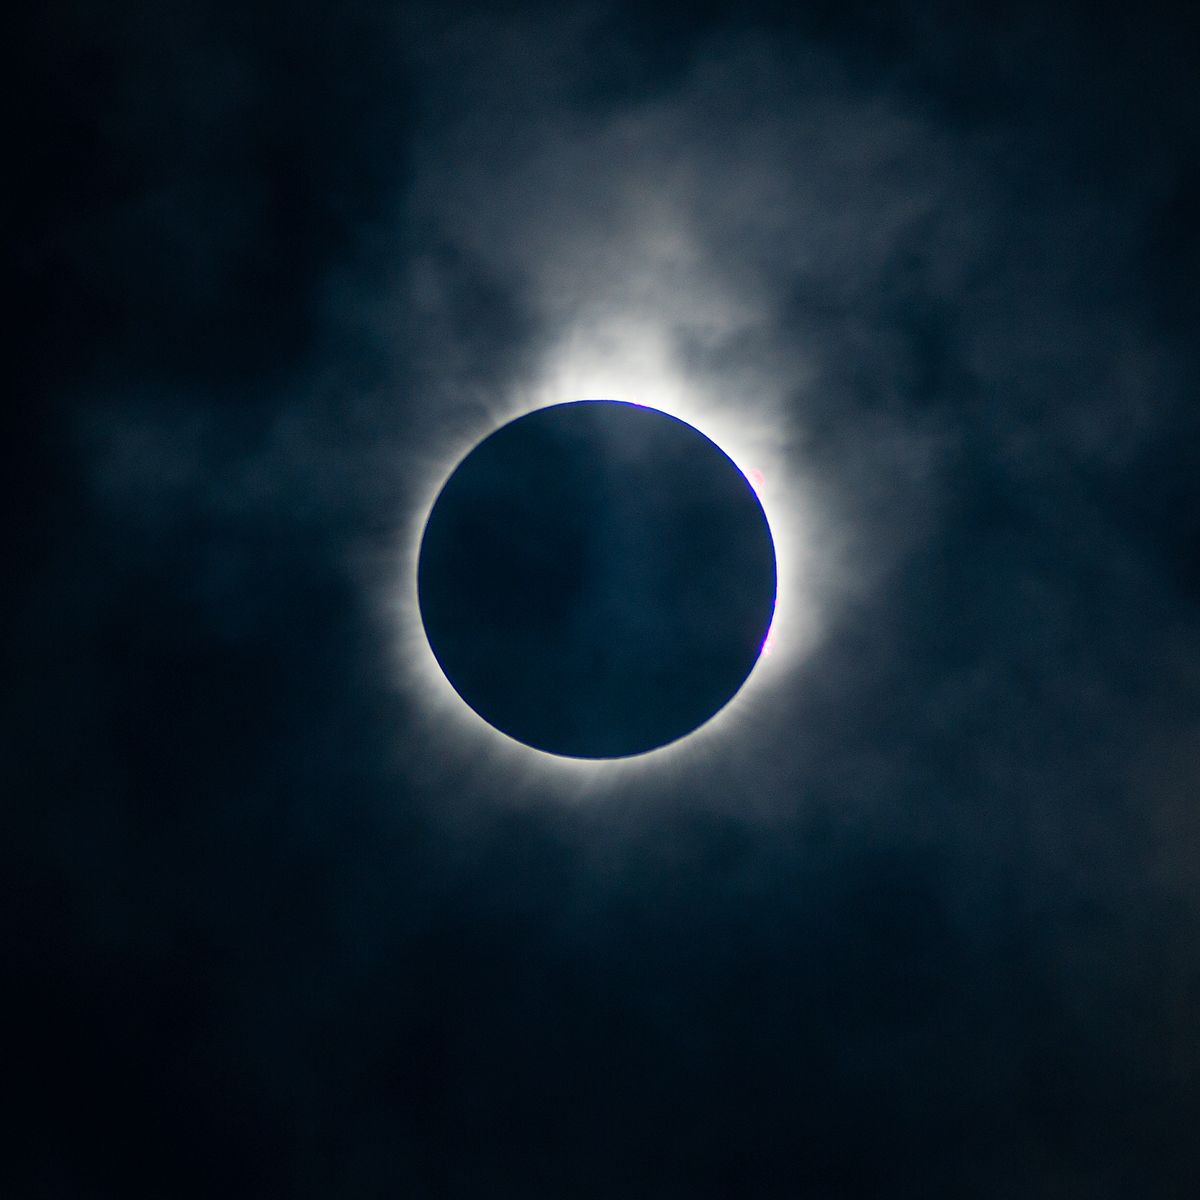 1 minute to totality